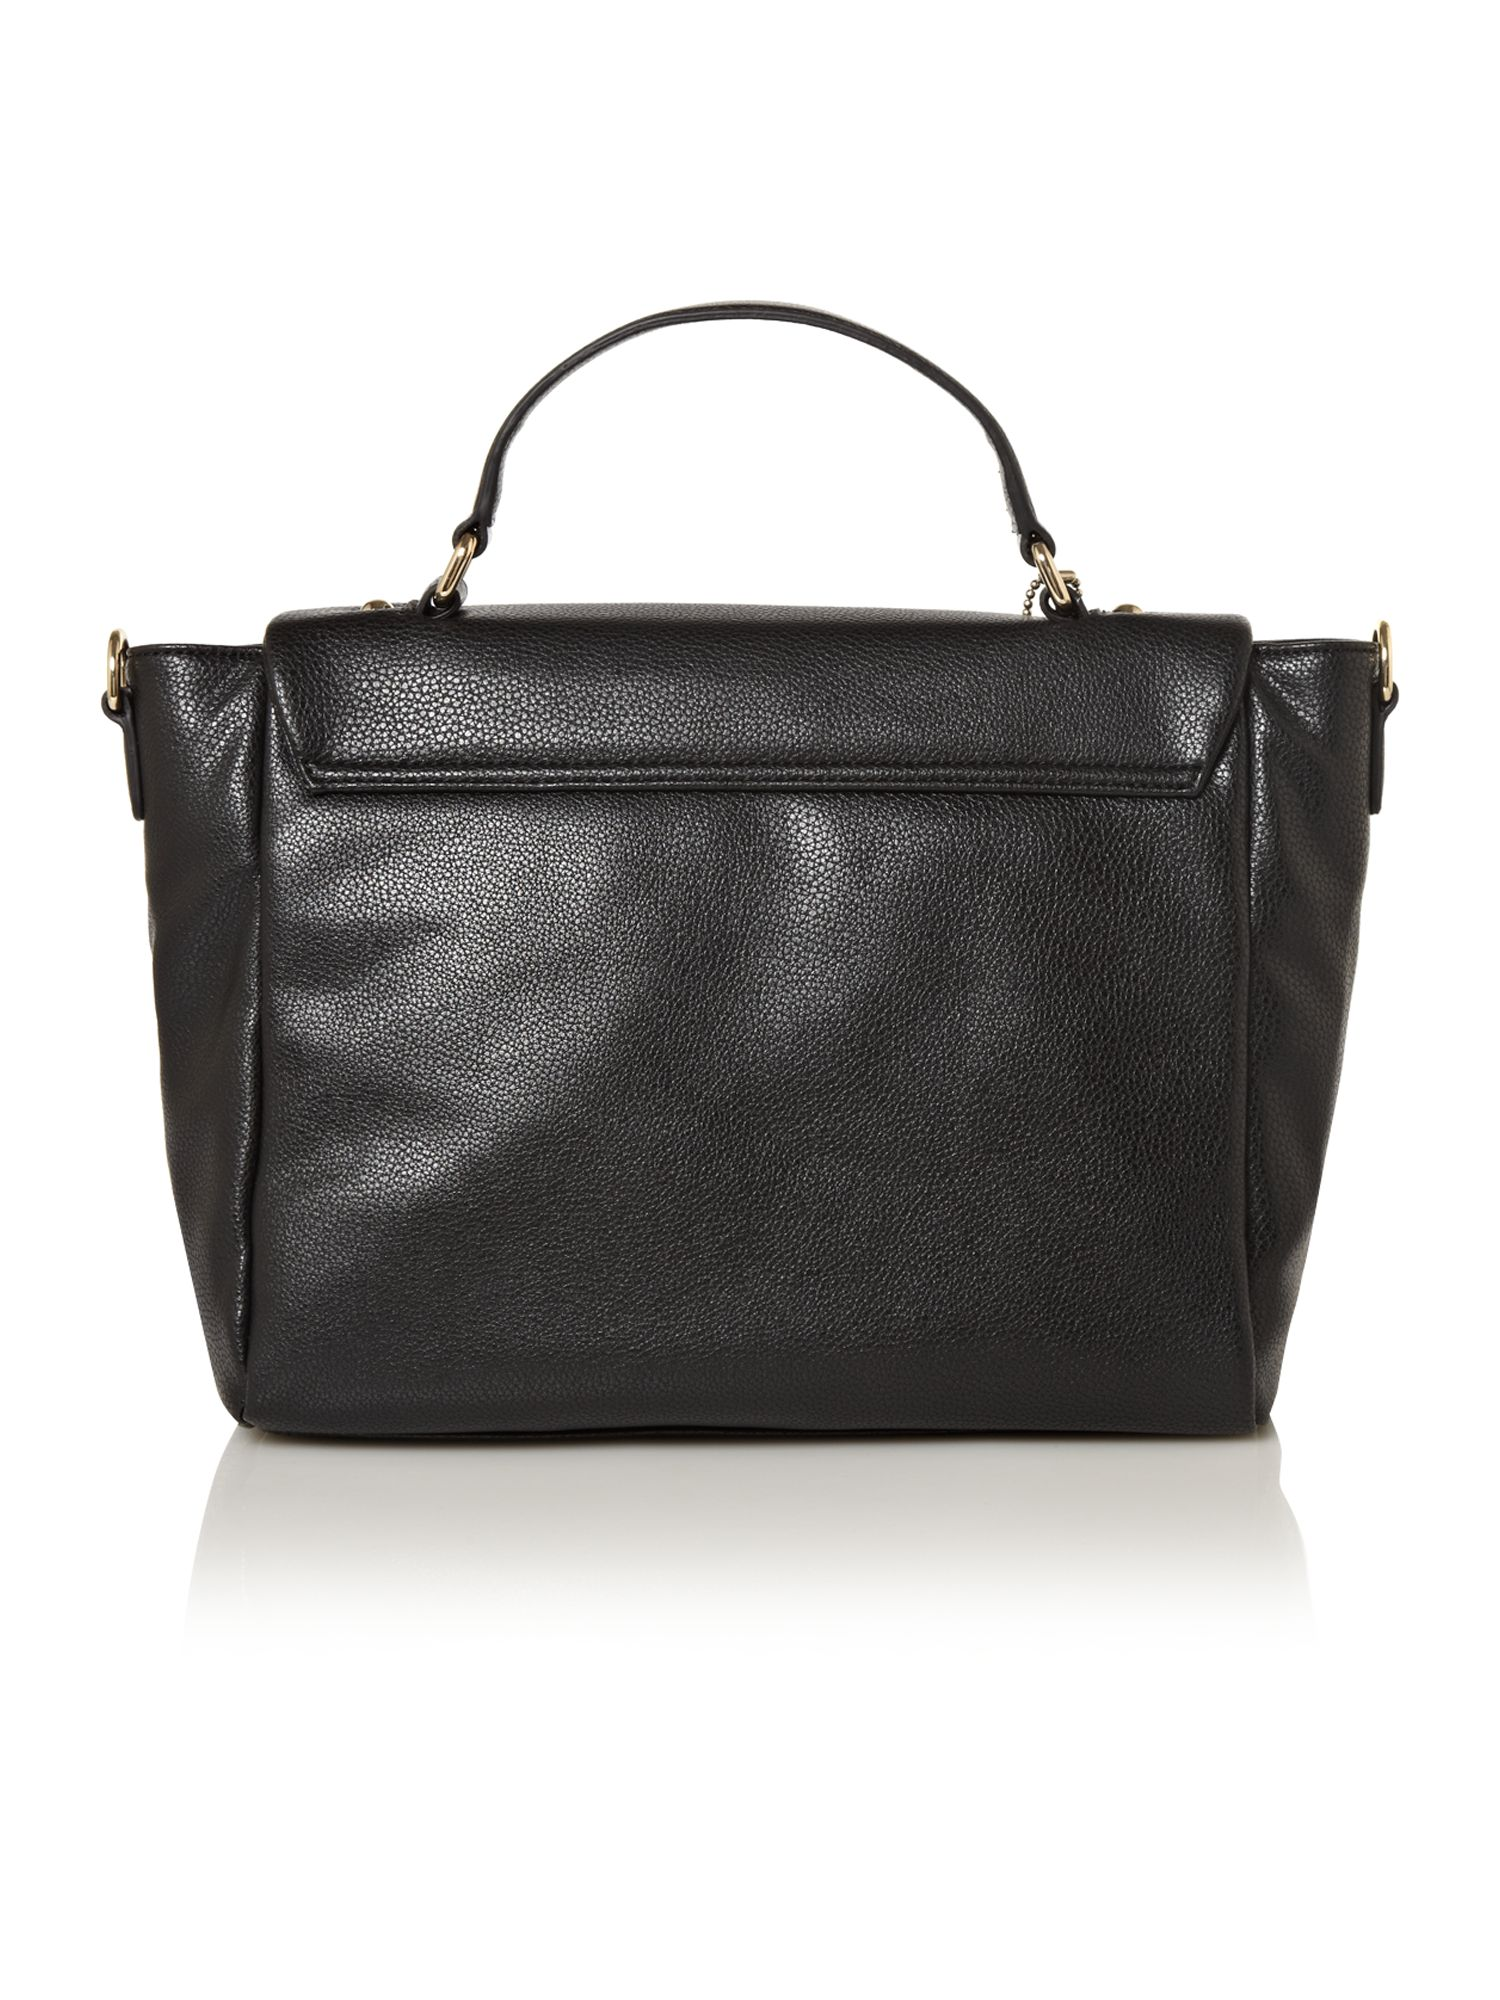 lyst dkny d charm satchel bag in black